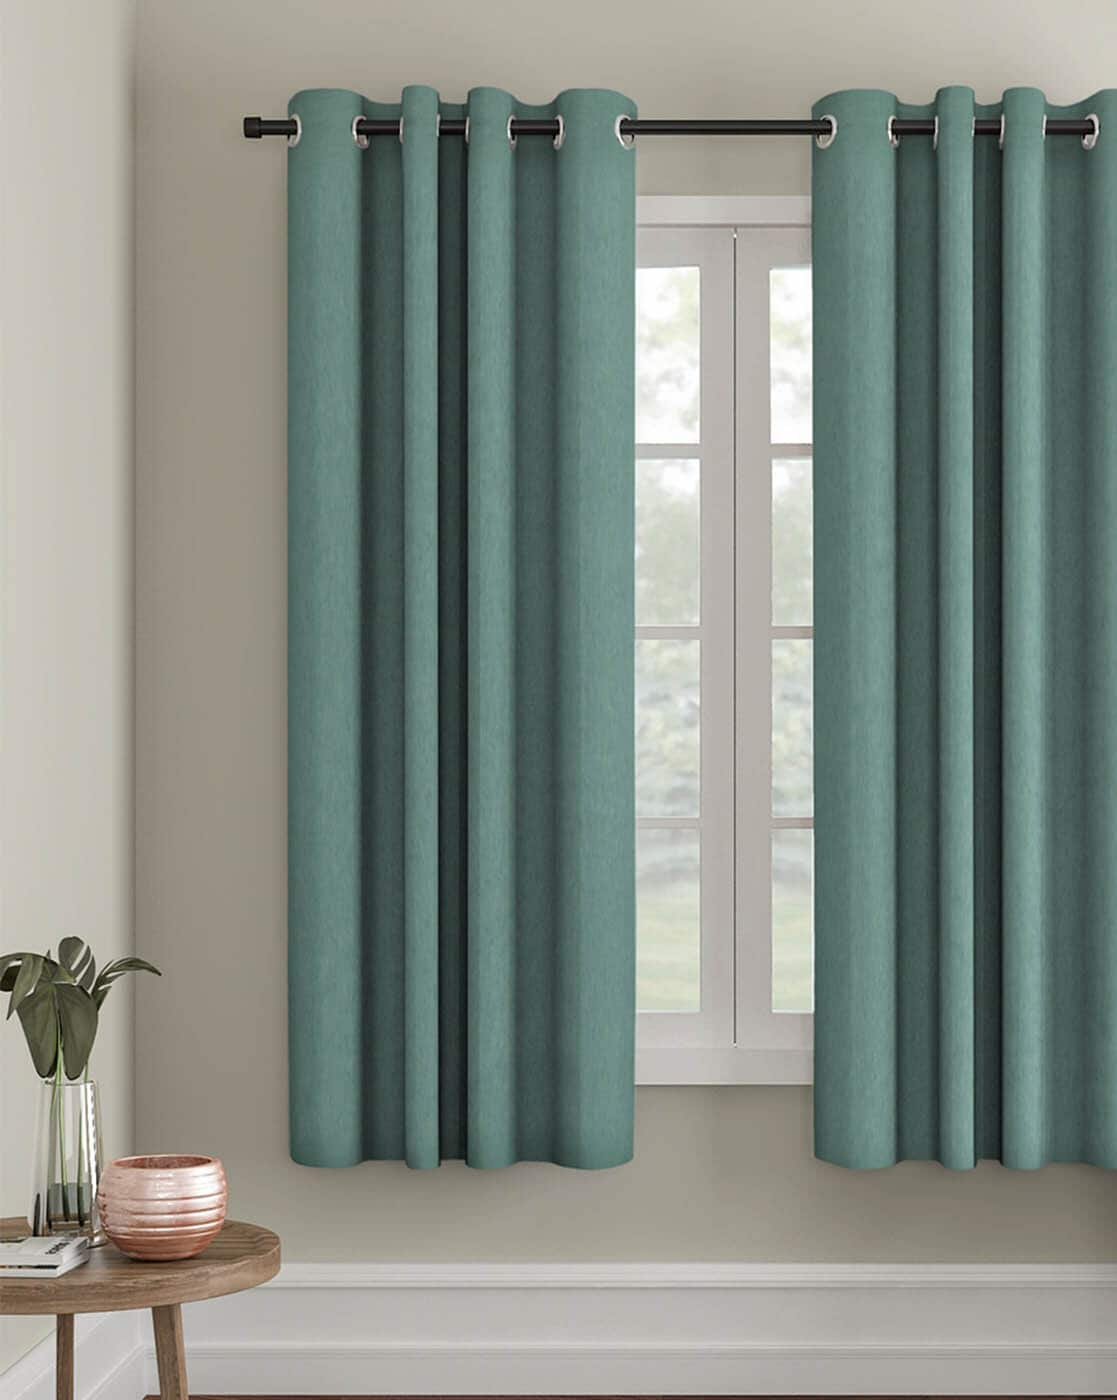 Buy Sea Green Curtains Accessories For Home Kitchen By Eyda Online Ajio Com